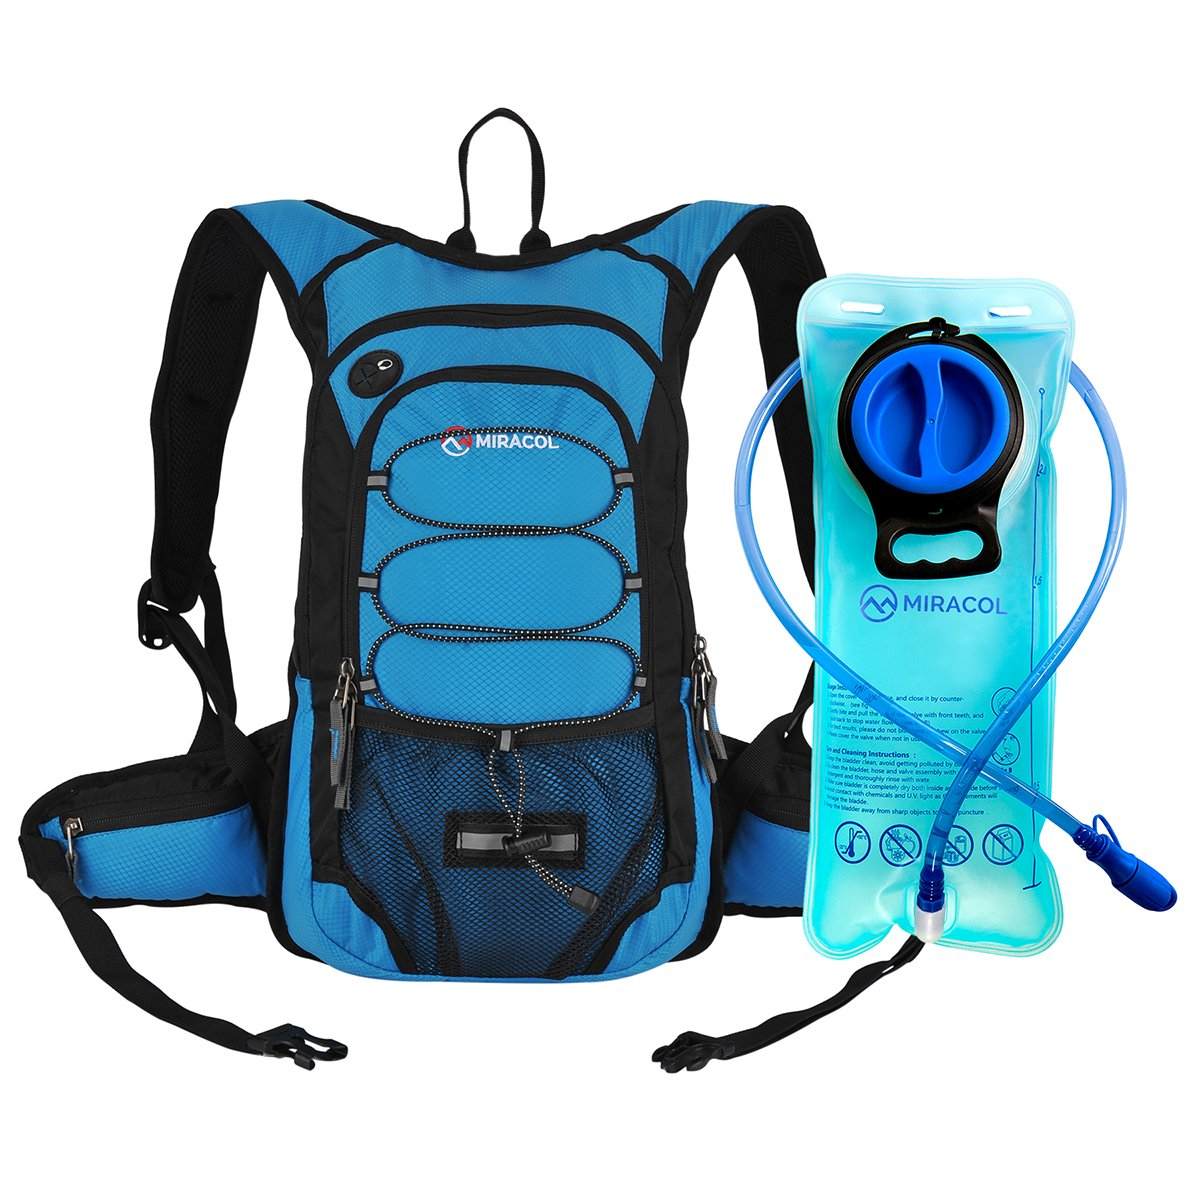 MIRACOL Hydration Backpack 2L Water Bladder, Thermal Insulation Pack Keeps Liquid Cool up to 4 Hours